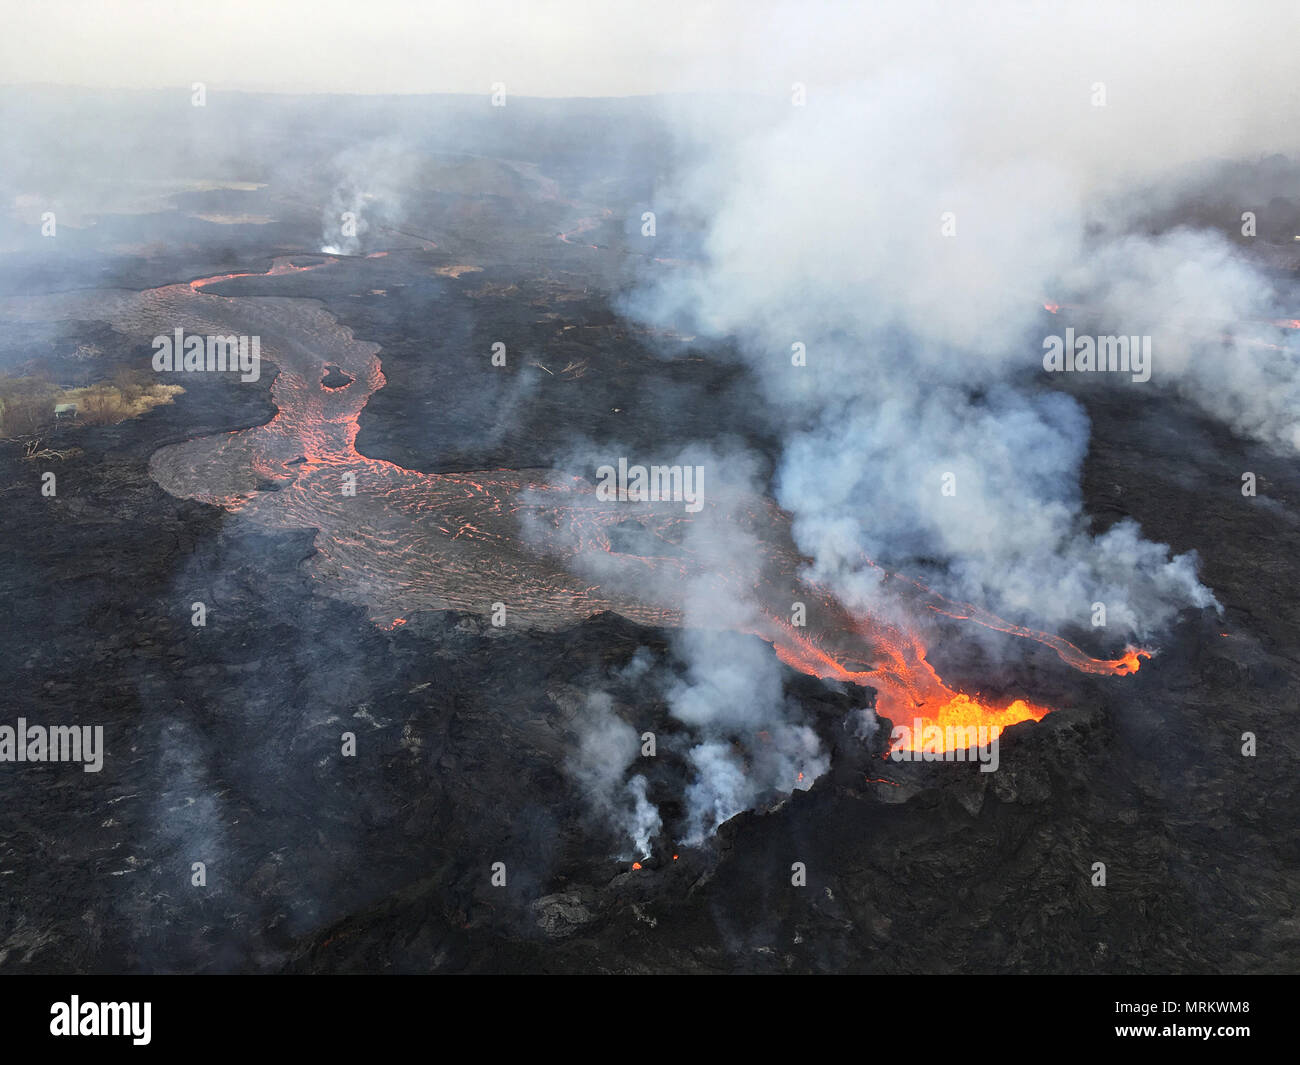 Channelized lava streams down fissure 22 in the East Rift Zone from the eruption of the Kilauea volcano May 24, 2018 in Pahoa, Hawaii. - Stock Image